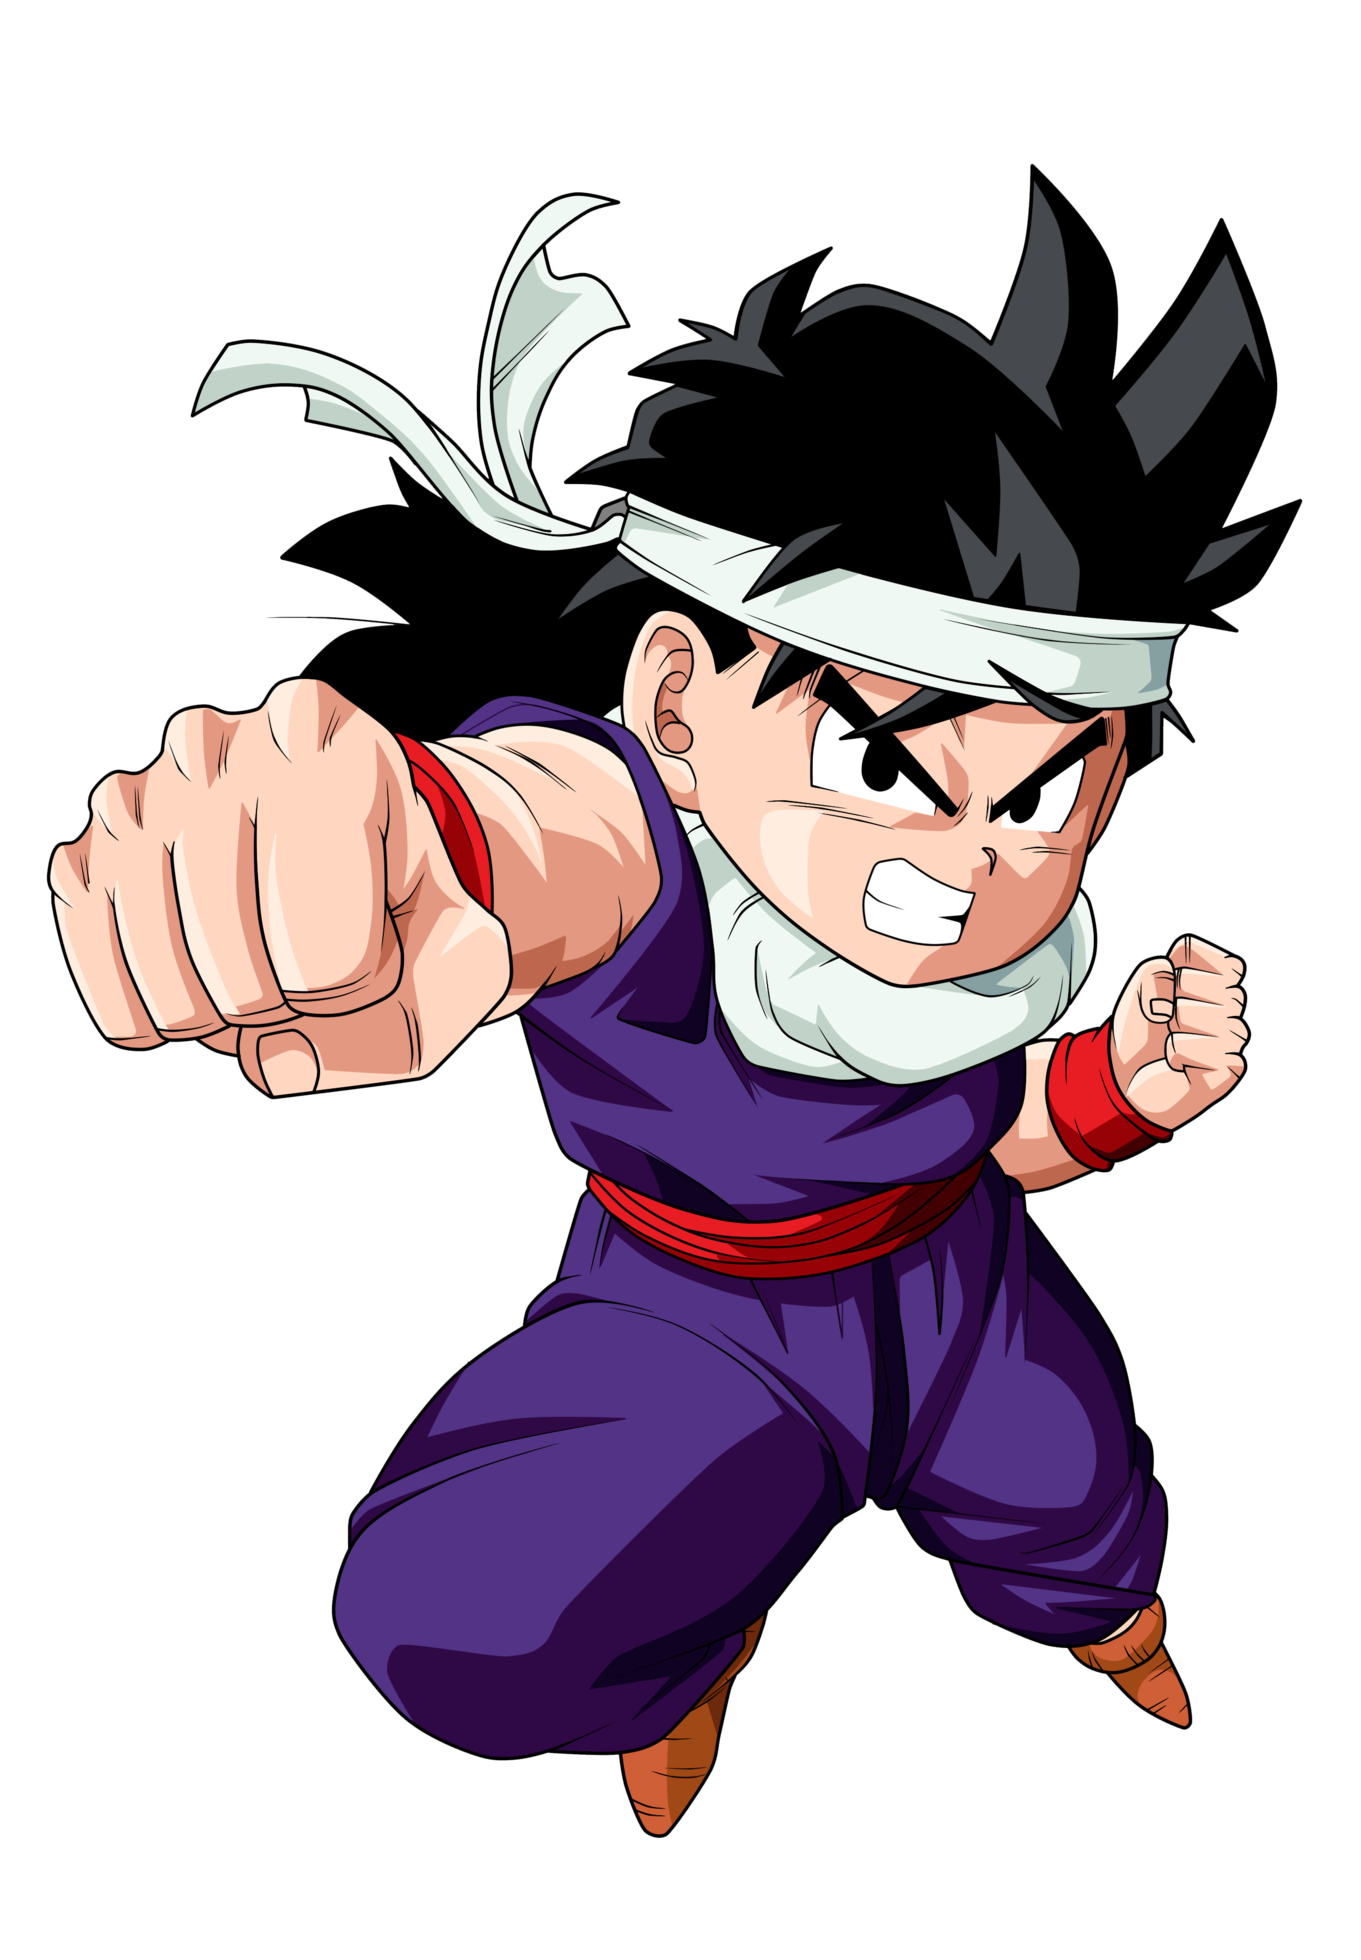 Son gohan vs battles wiki fandom powered by wikia - Dragon ball z gohan images ...